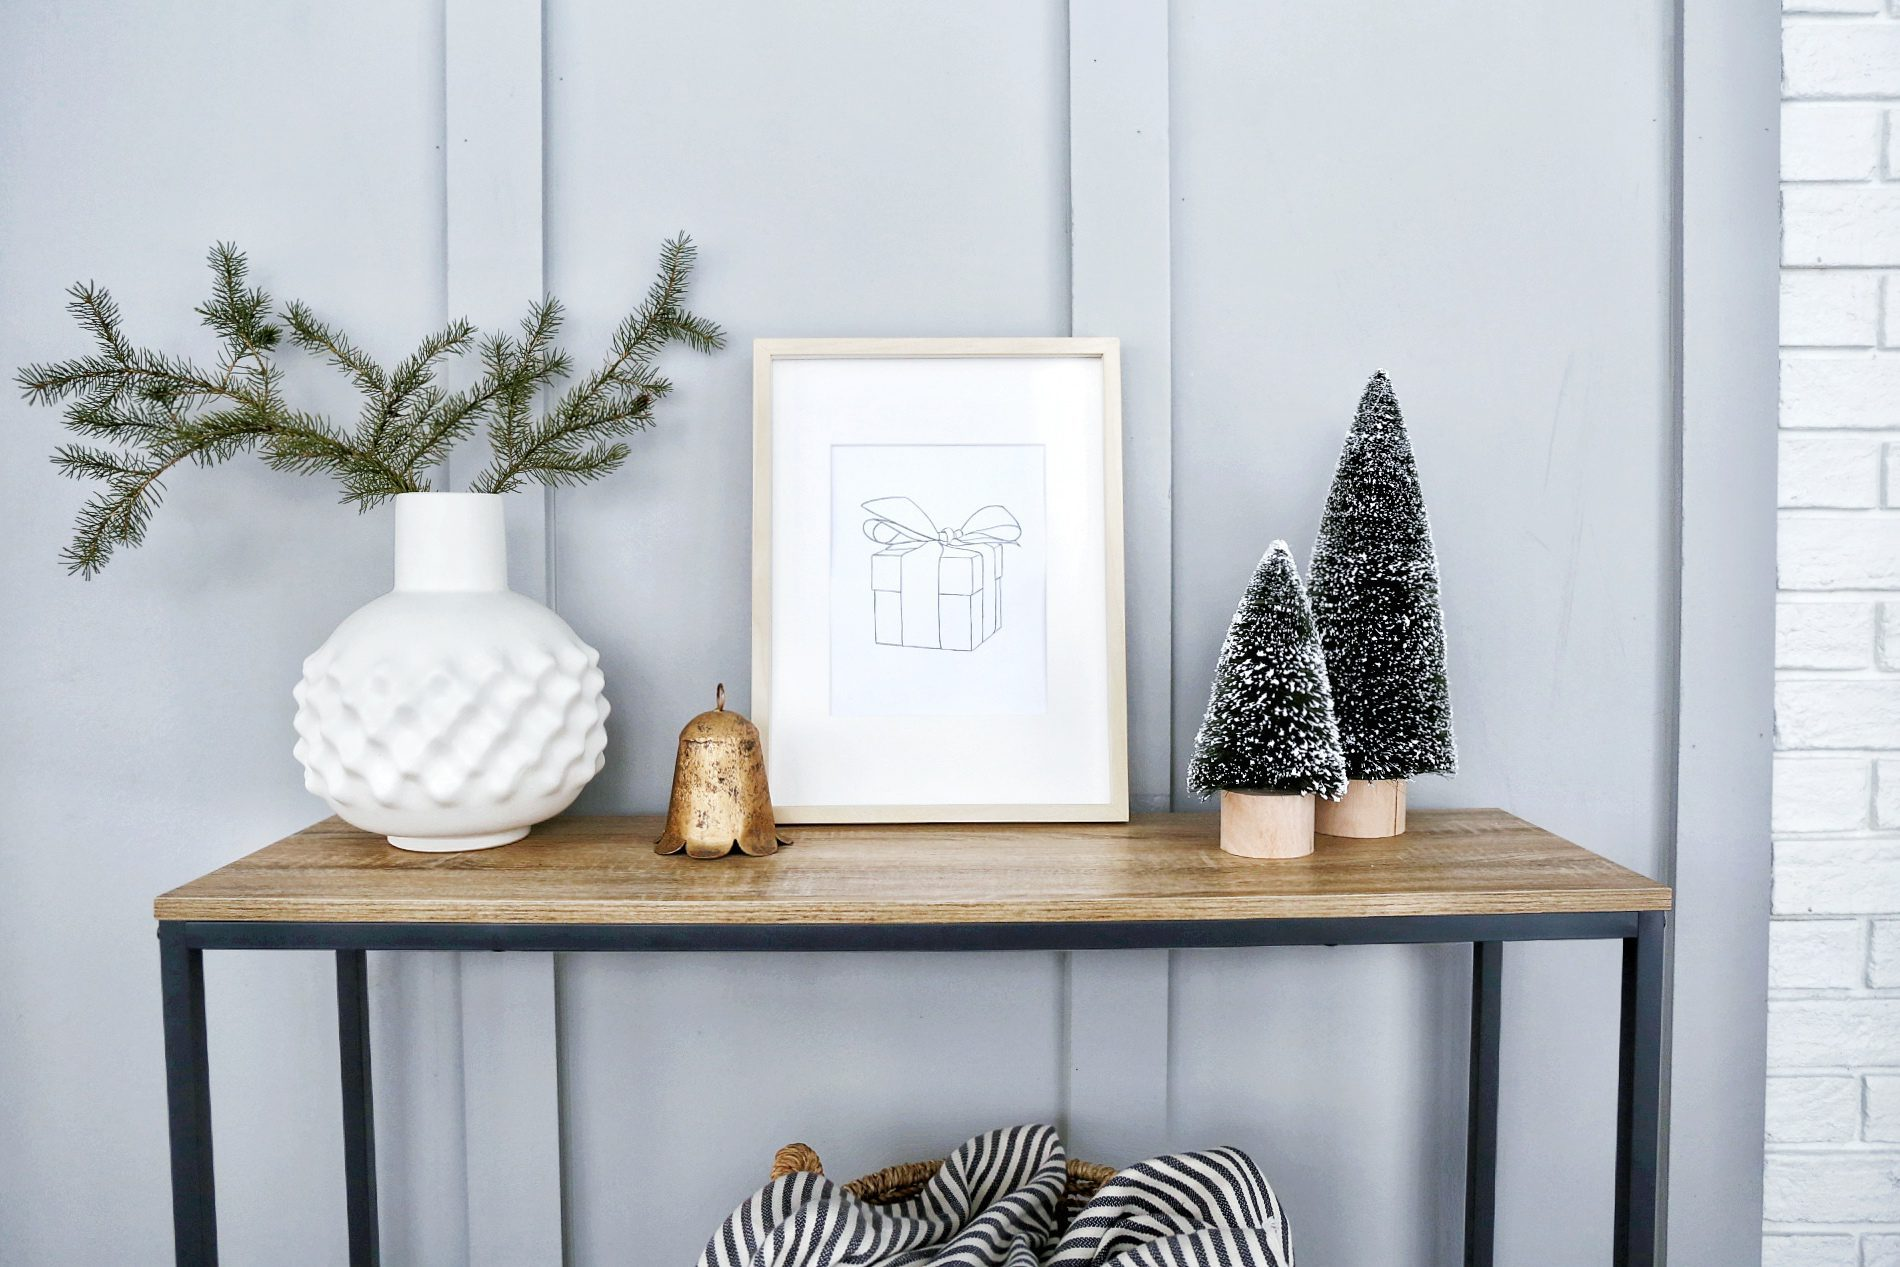 framed print of a present sits on a console table beside Christmas trees and a brass bell